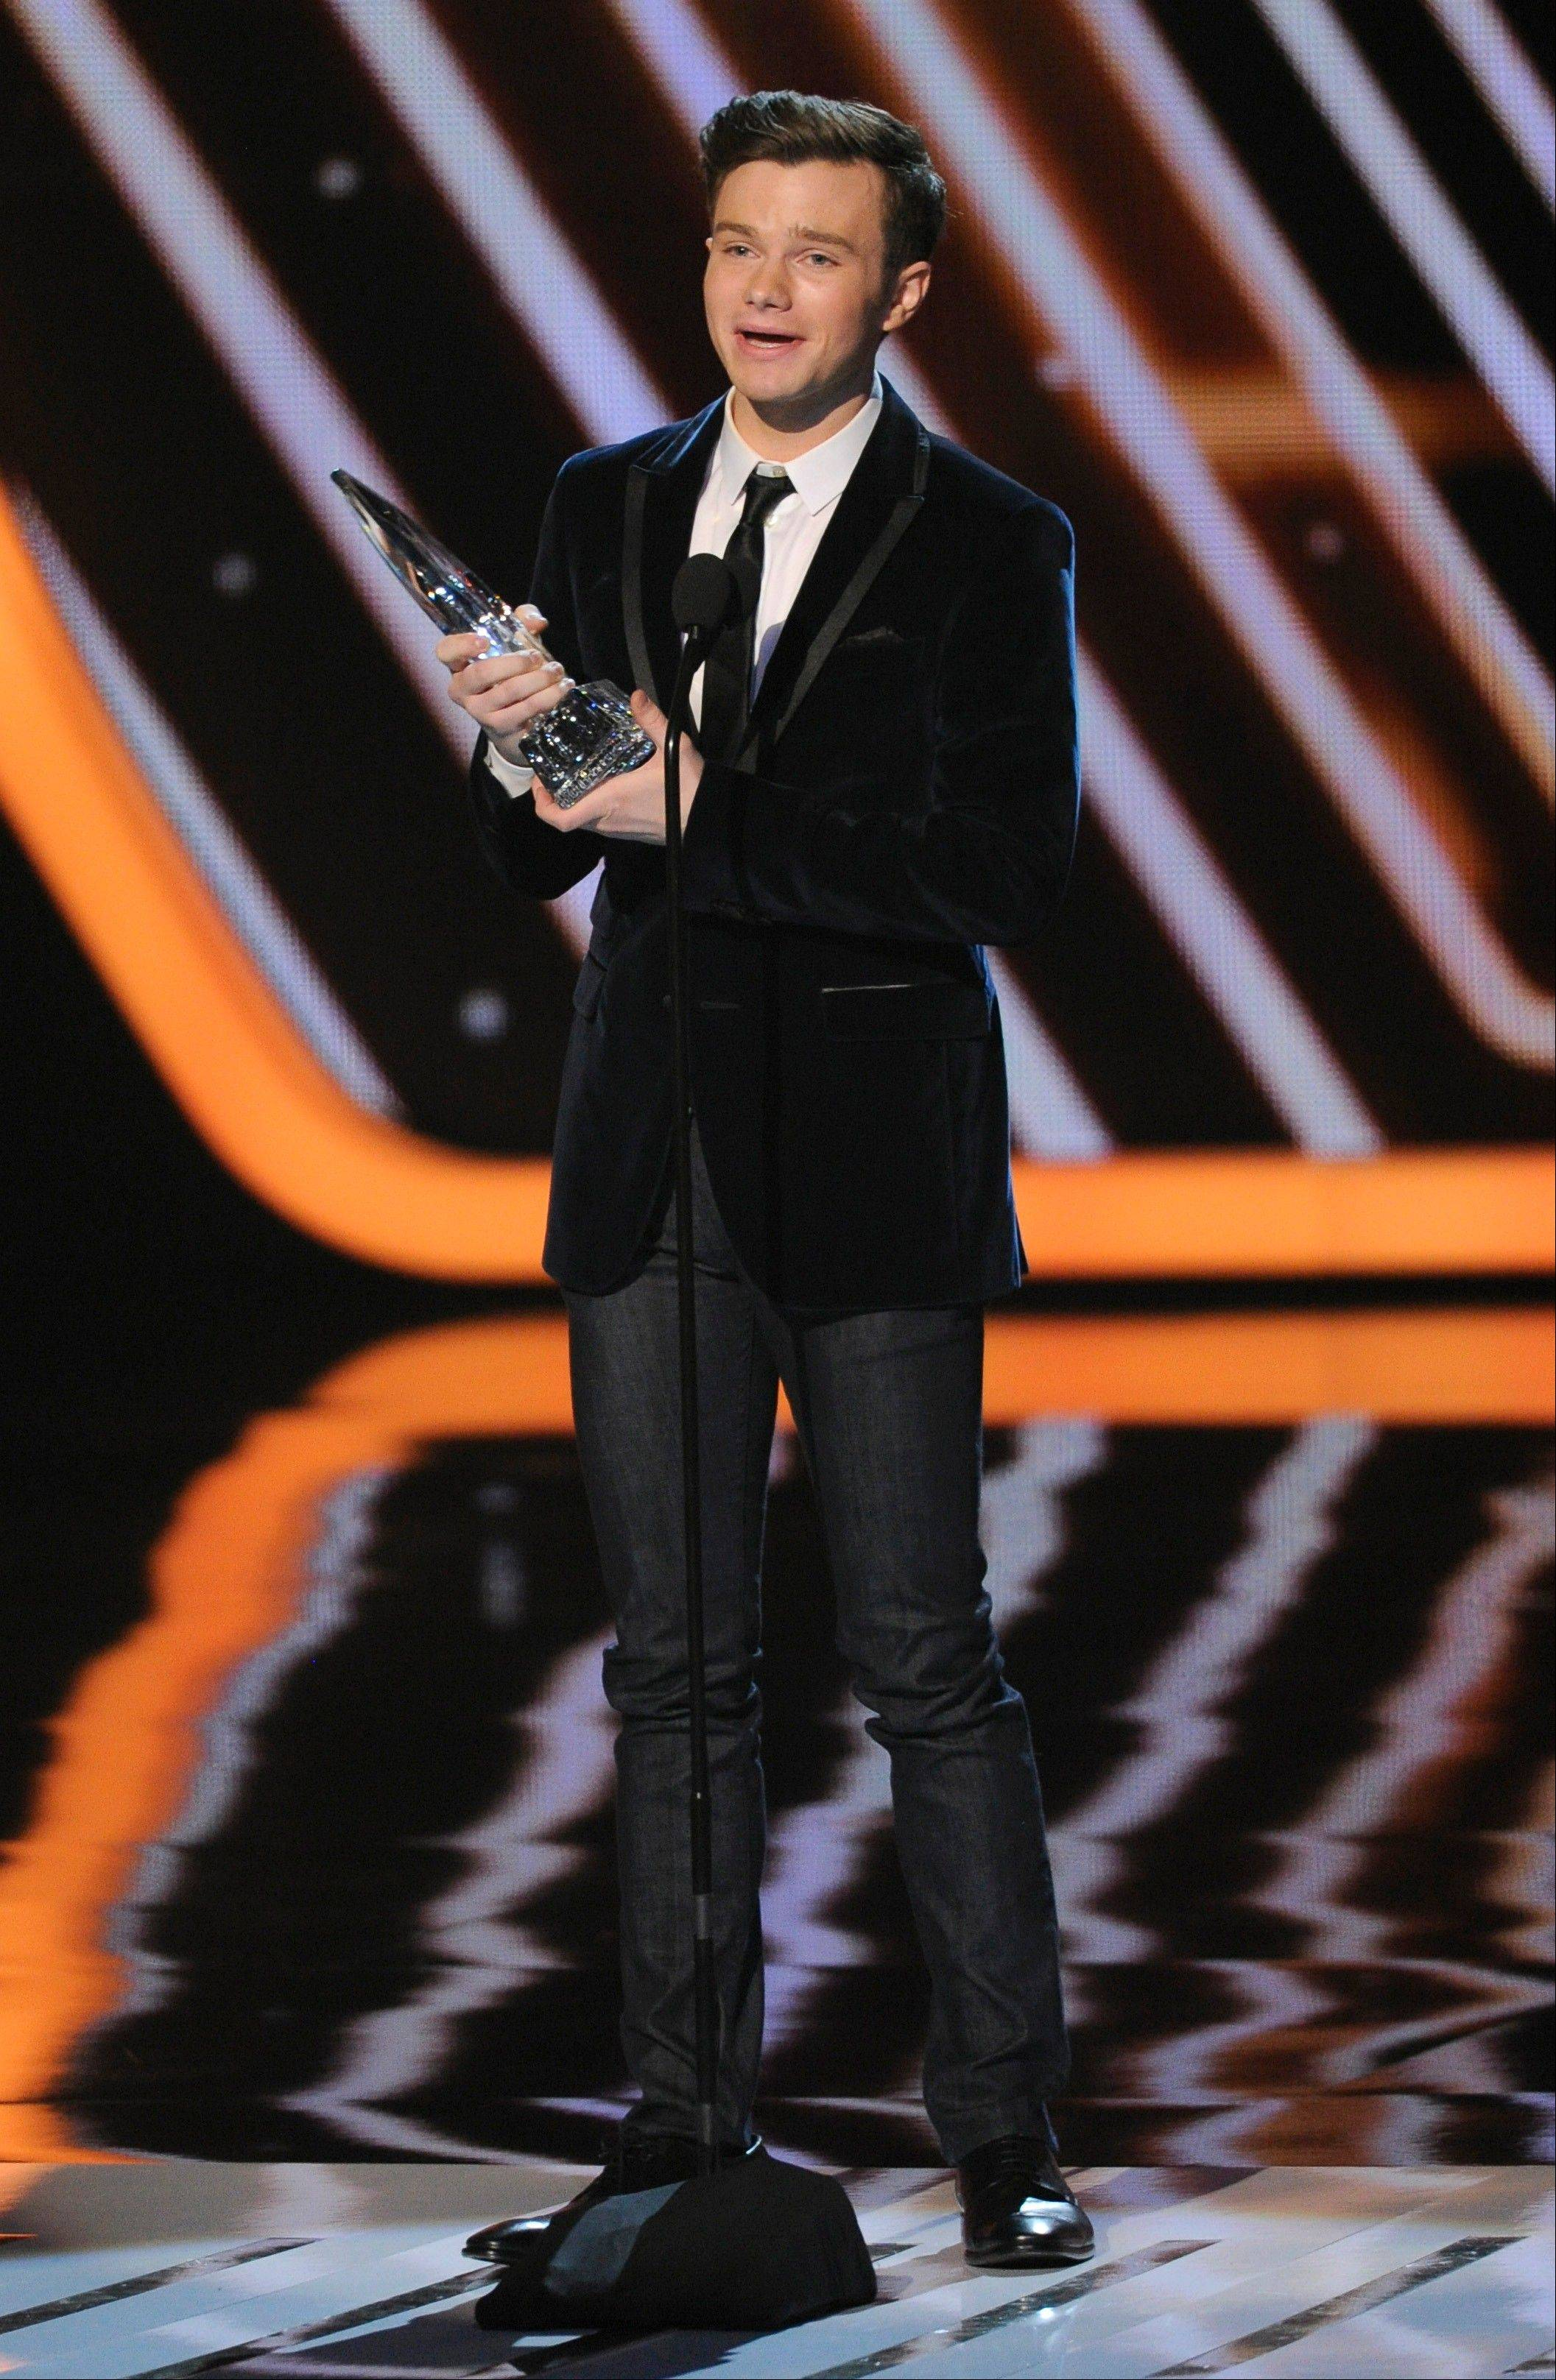 Chris Colfer accepts the award for favoritChris Colfer accepts the award for favorite comedic TV actor at the 40th annual People's Choice Awards.